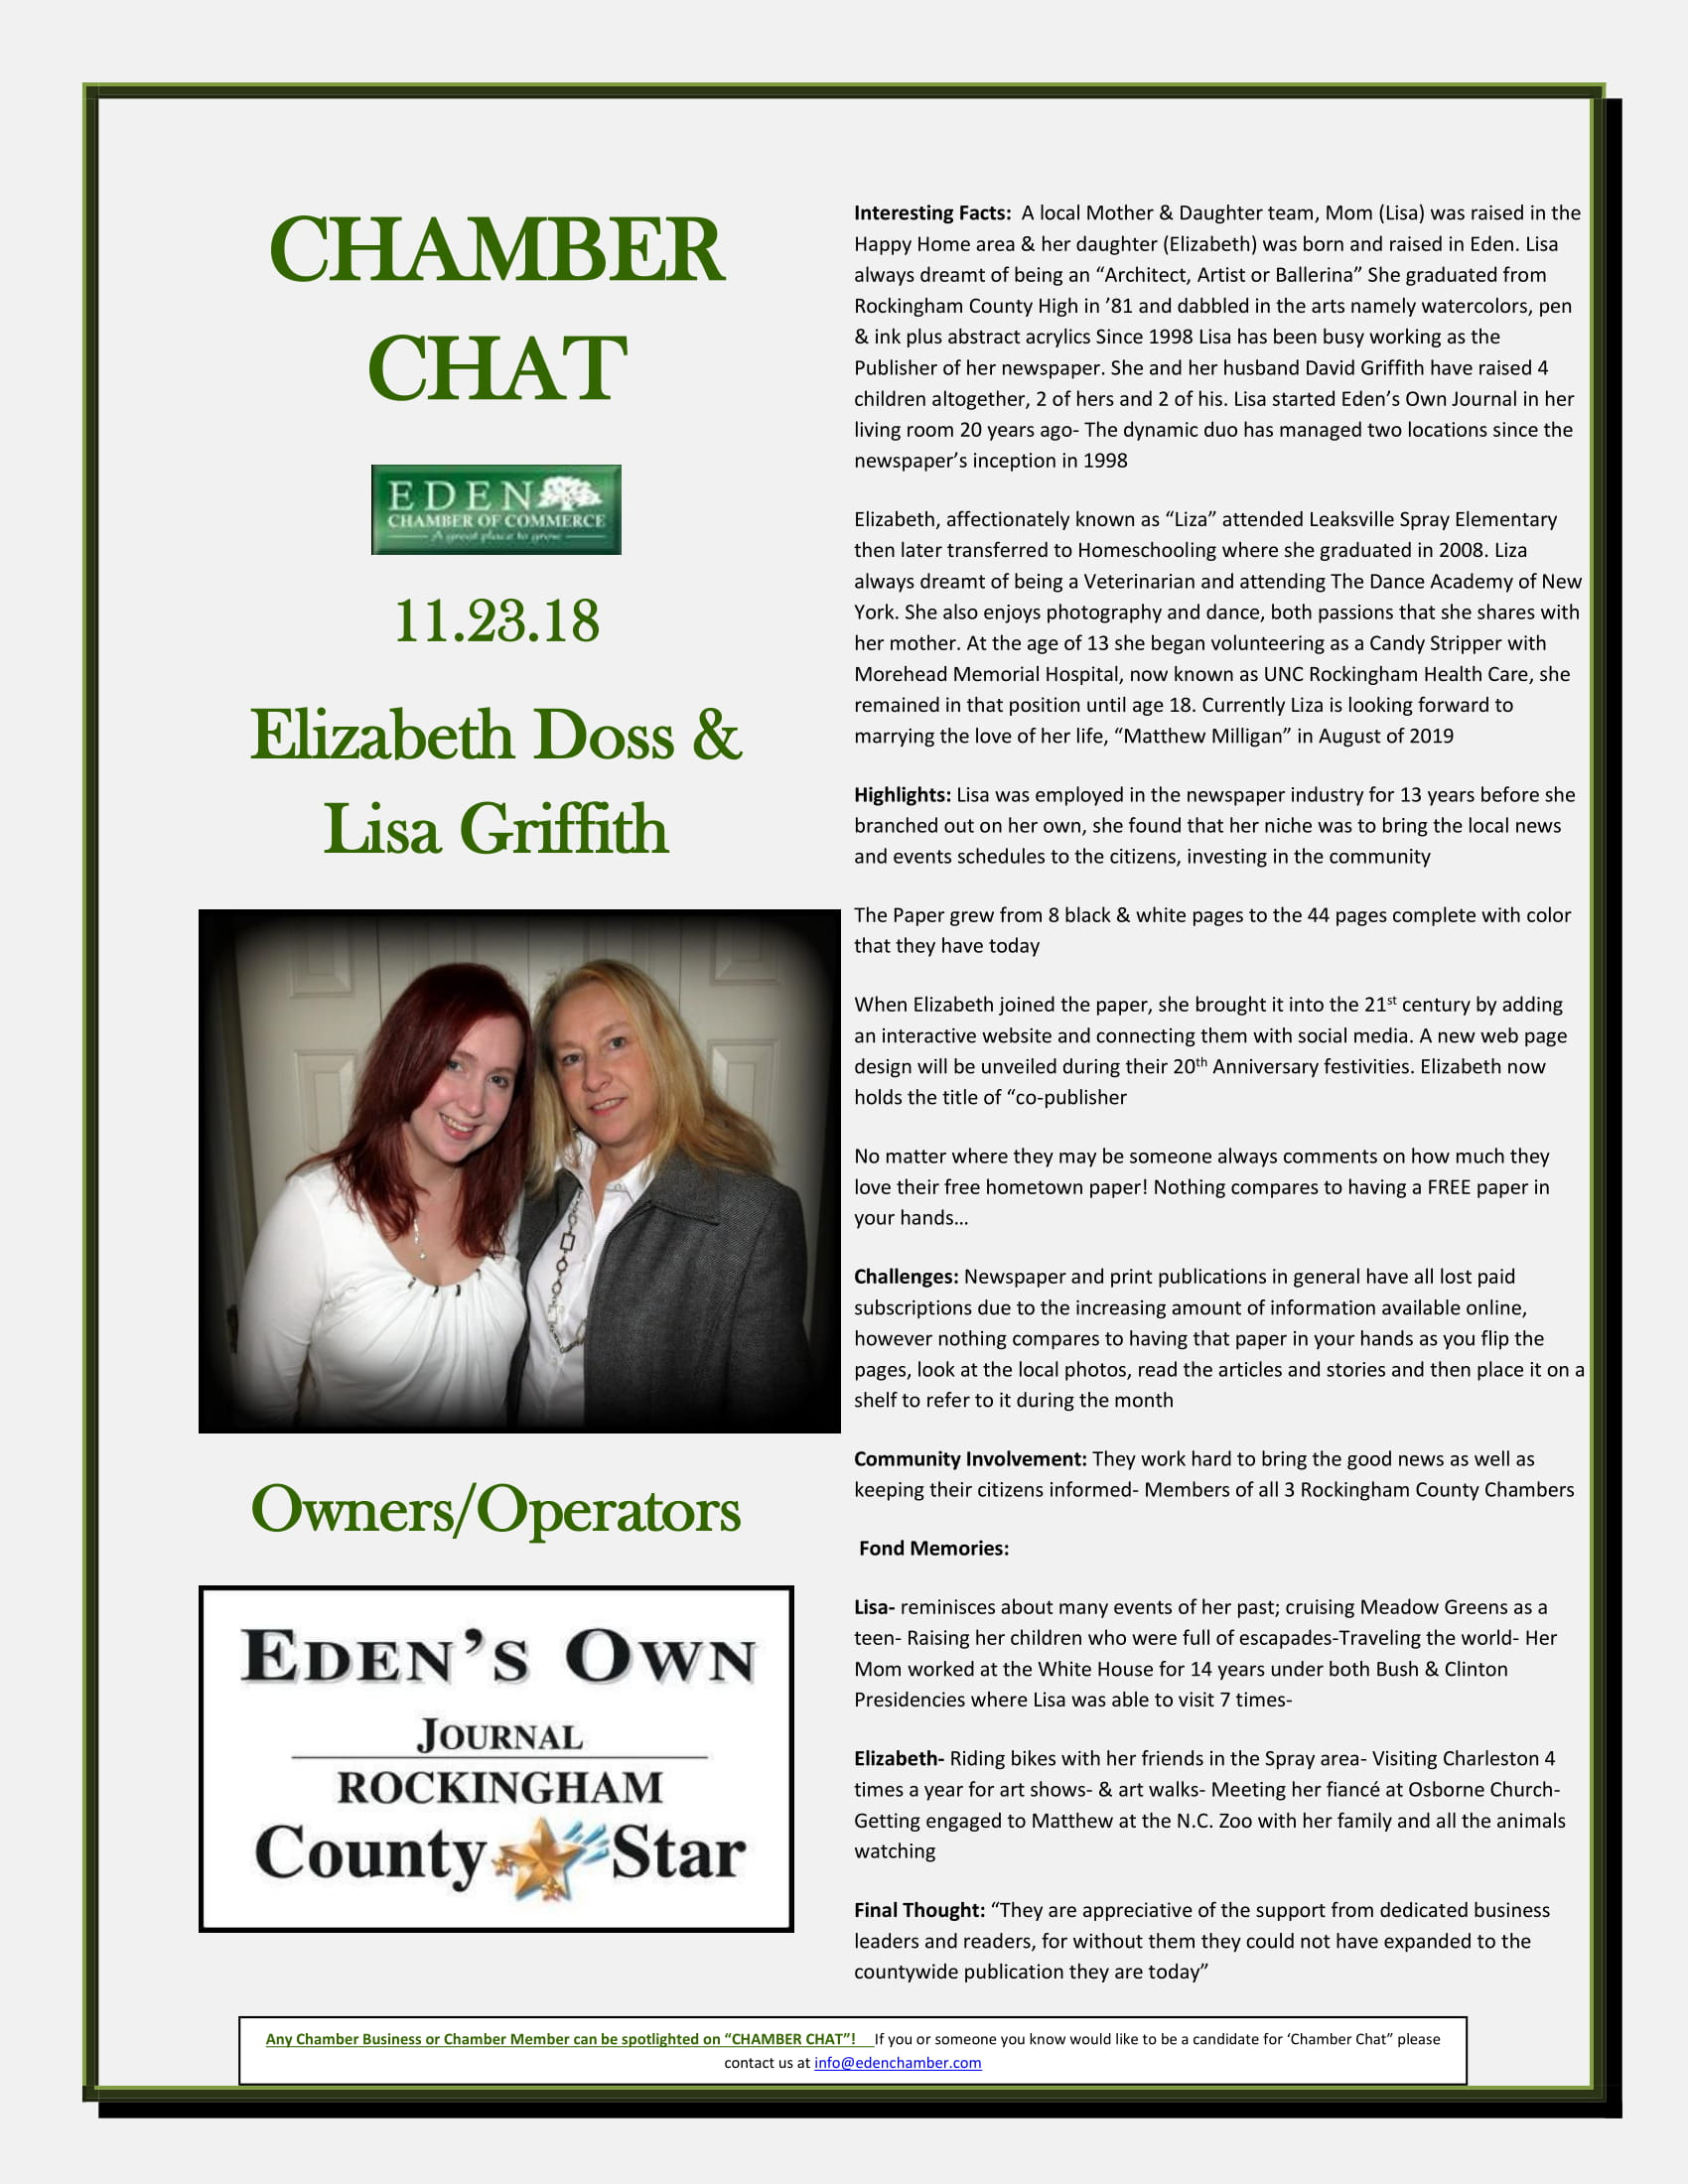 CHAMBER-CHAT-Eden's-Own-Journal-11.23.18-1